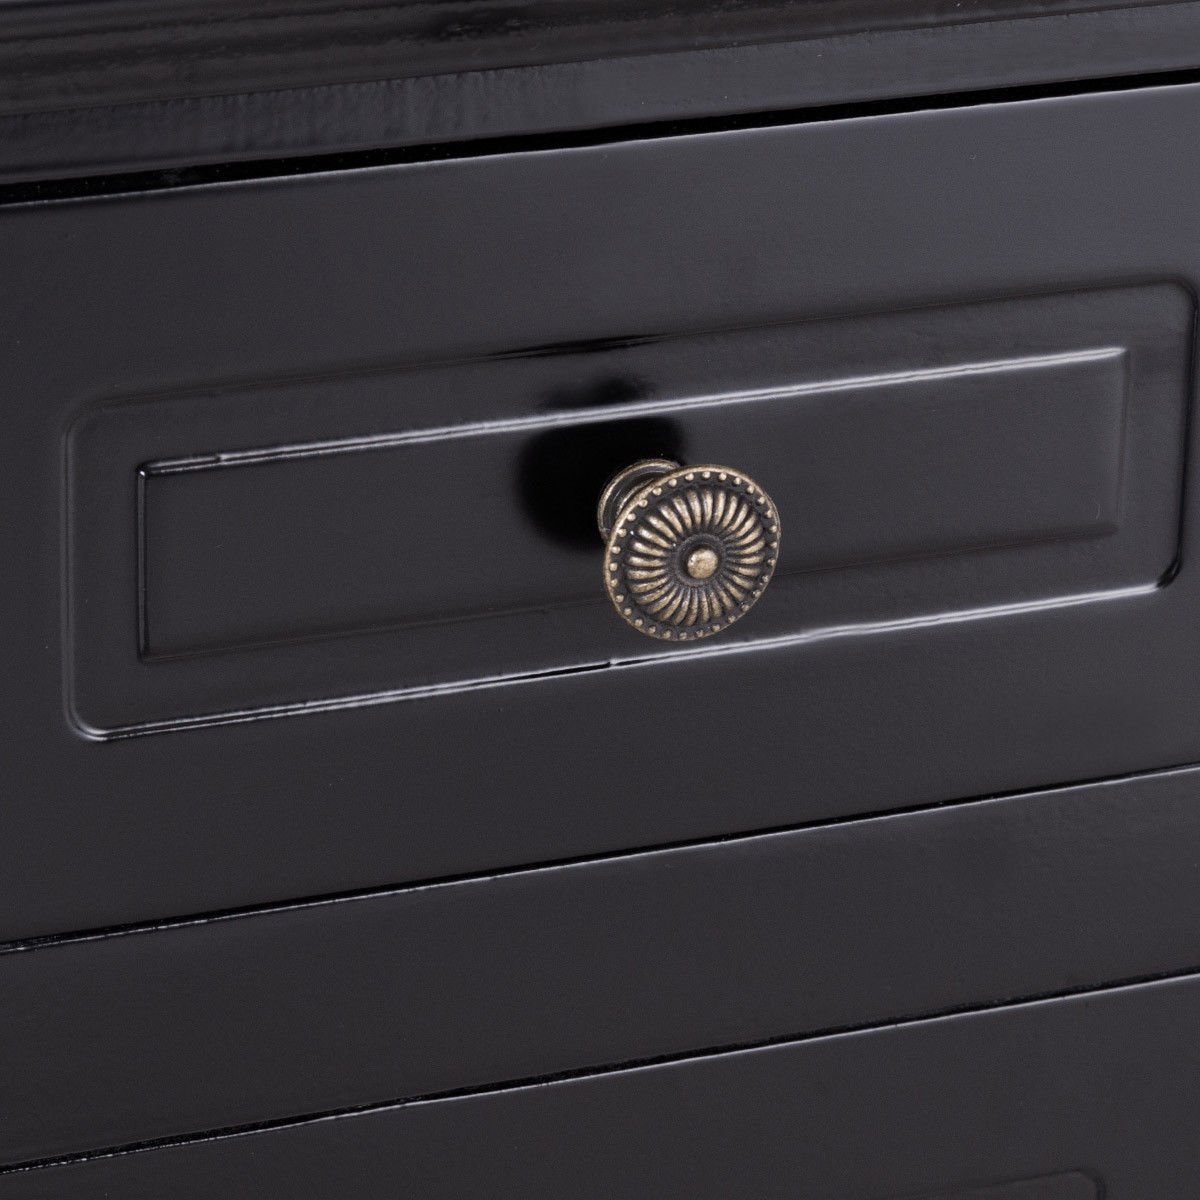 Black Nightstand For Bedroom w/Storage Drawer and Cabinet, Wood End Accent Table by unbrand (Image #7)